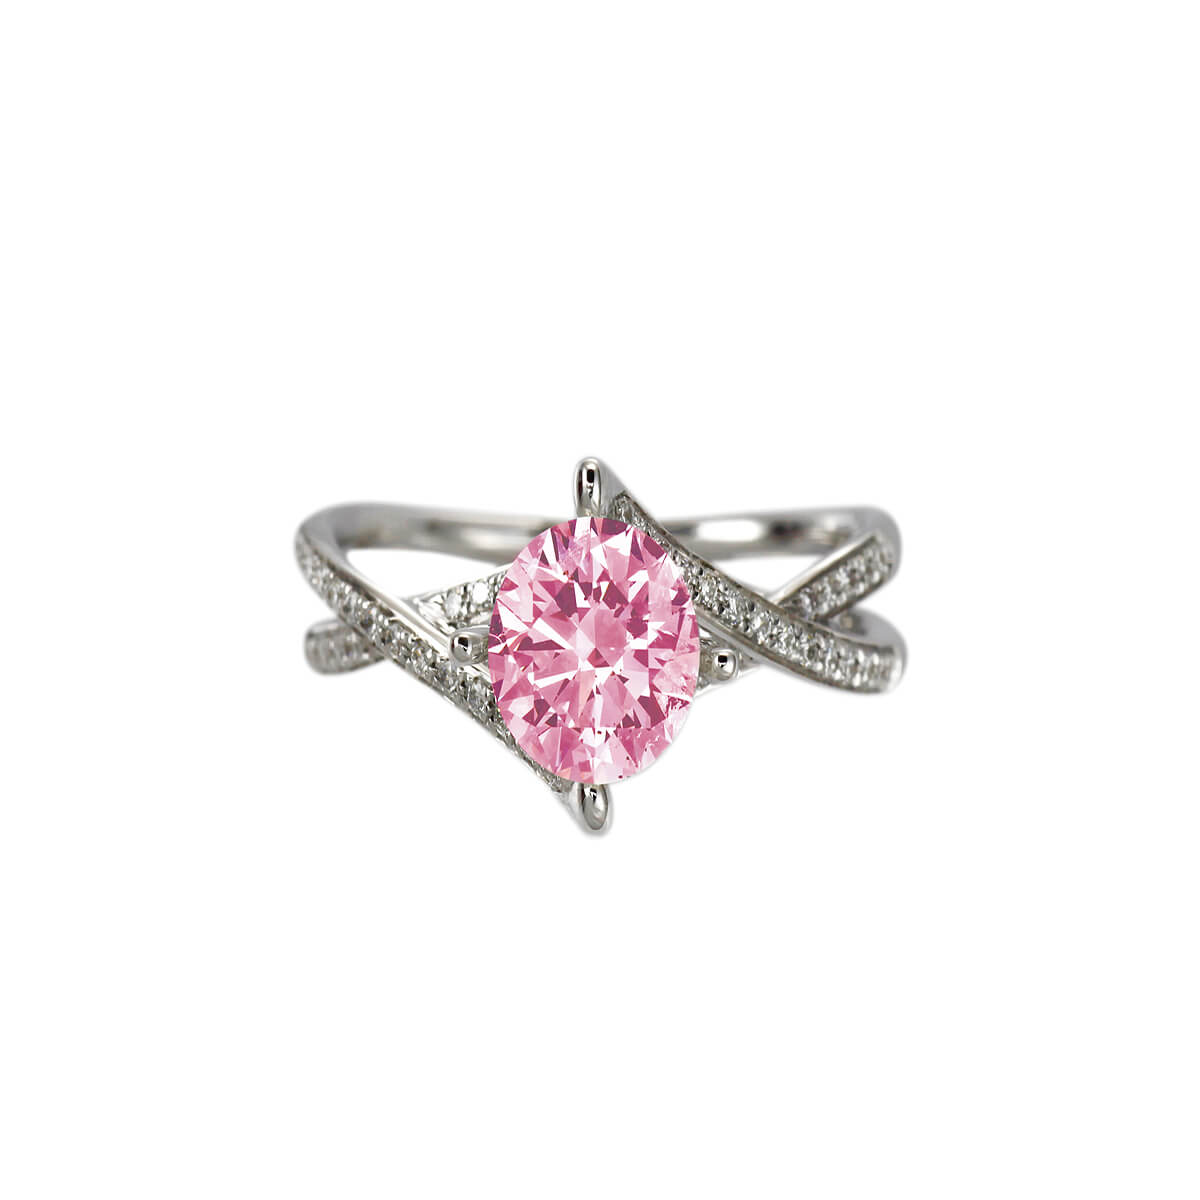 Anastasia Pink Diamond Ring